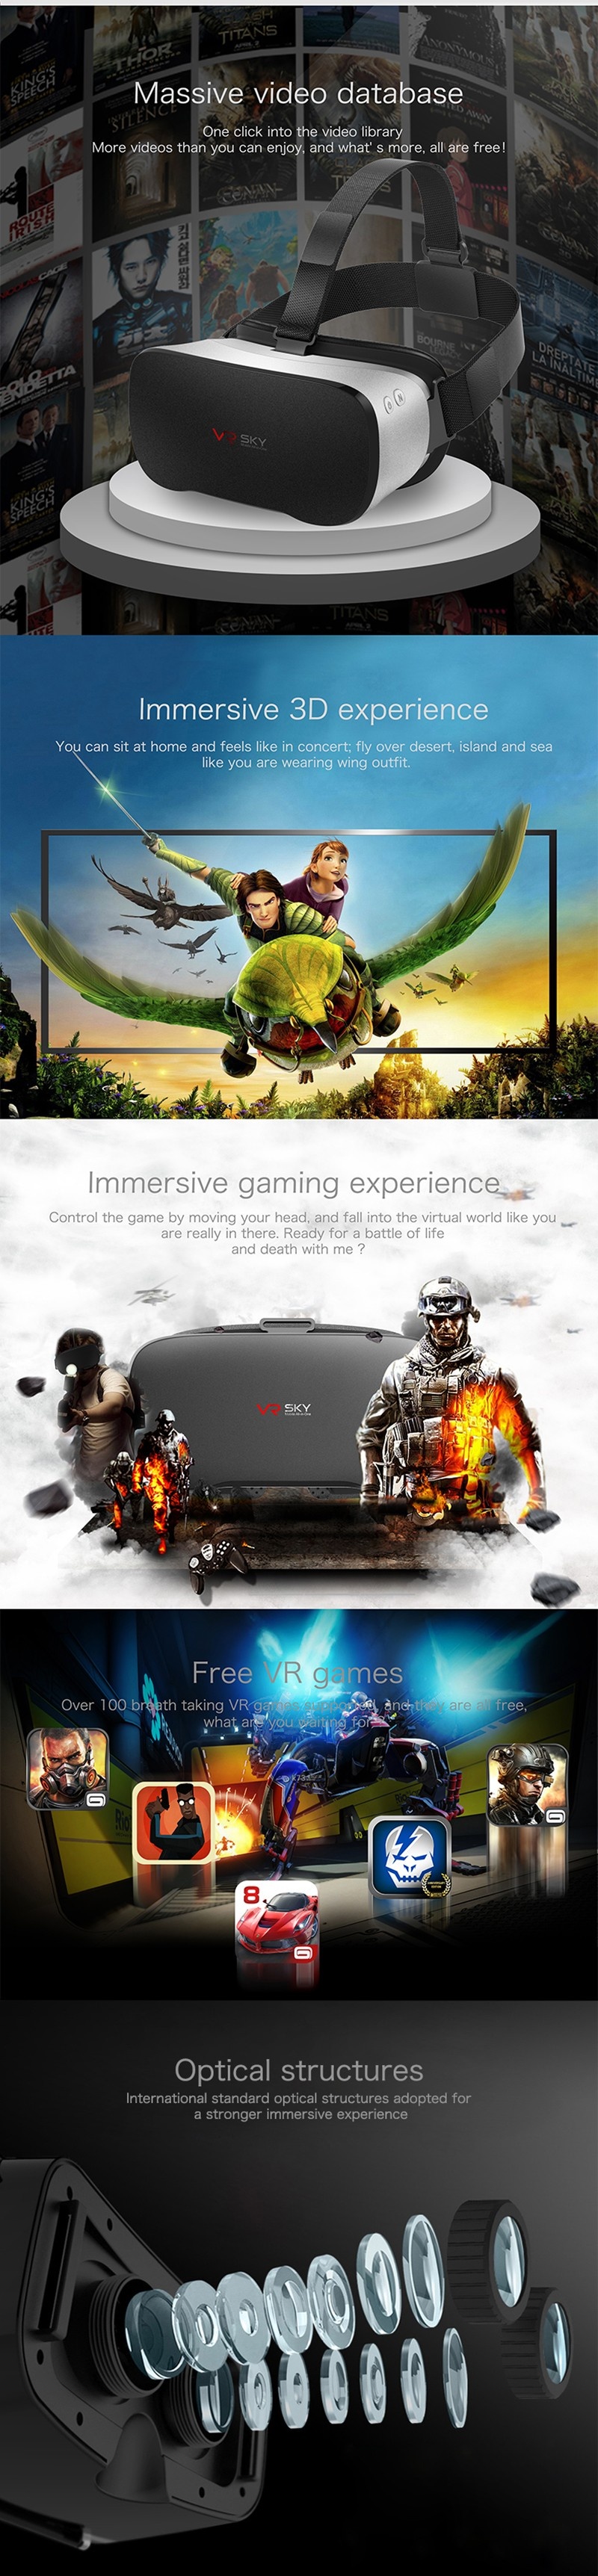 CX-V3 All In One Headset Allwinner H8 VR box Android wifi BT4.0 1080P FHD Display Immersive 3D Glasses Virtual Reality Headset